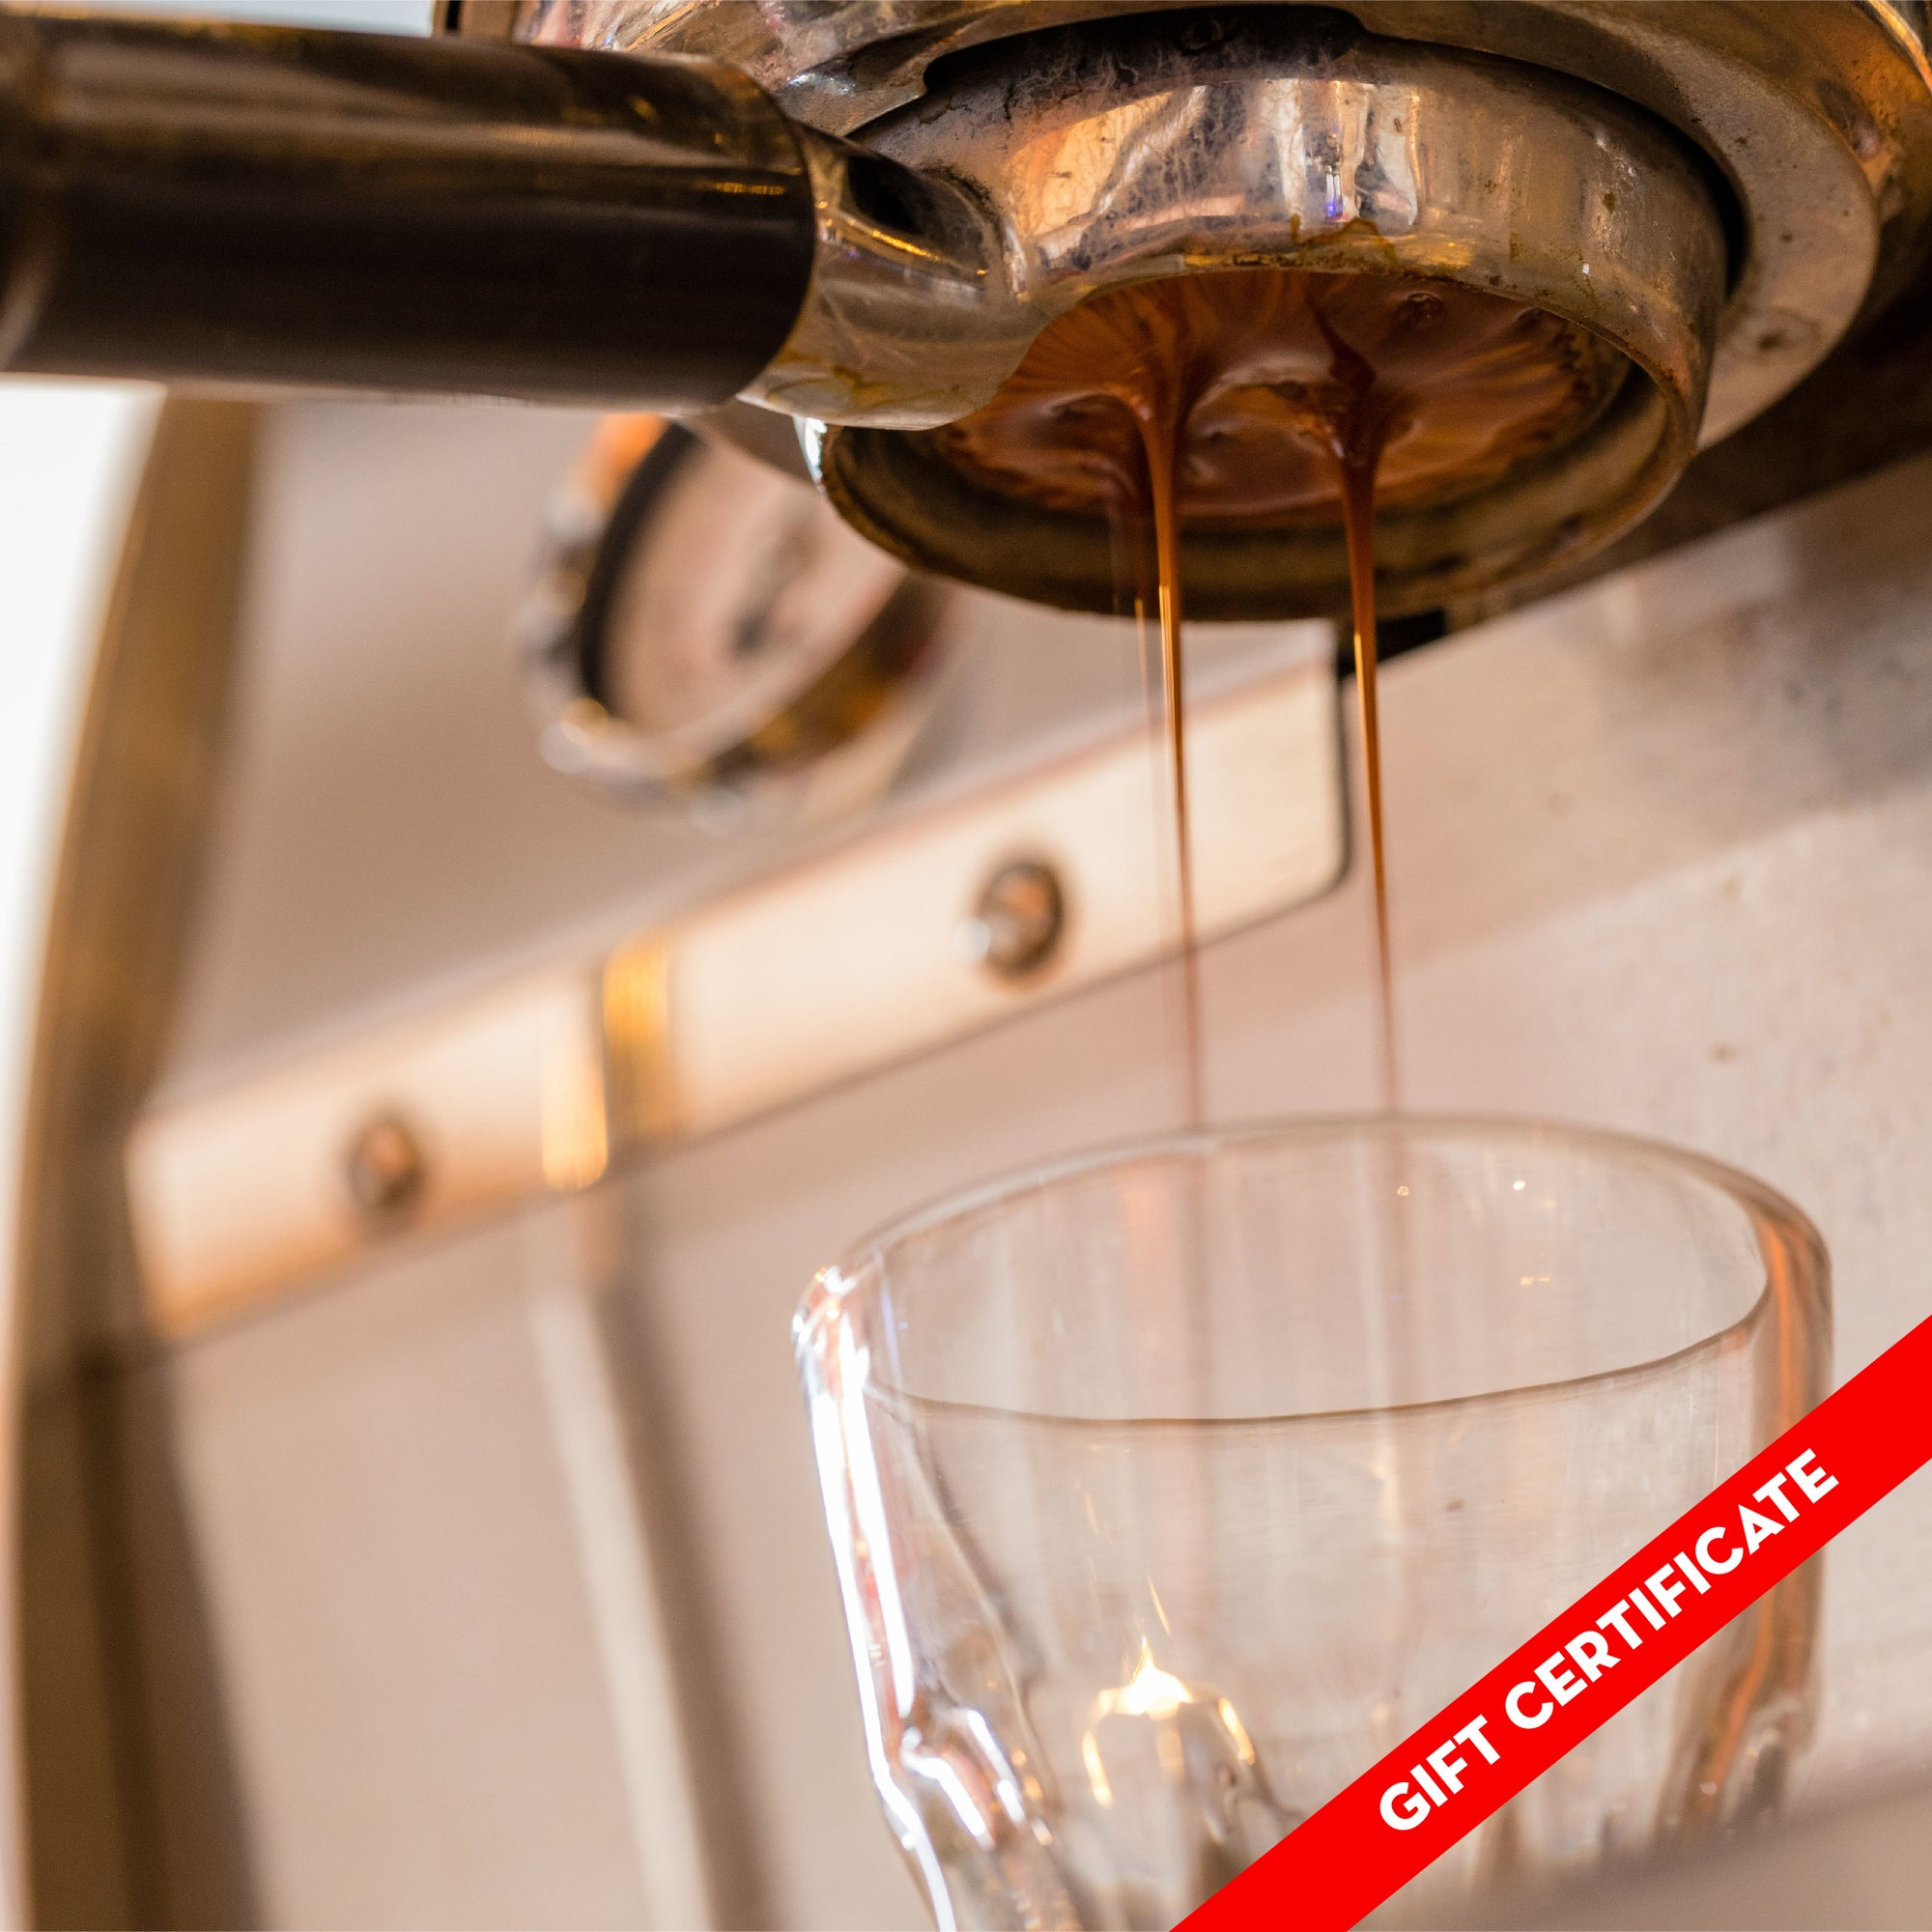 Espresso Theory - Online Course - Gift Certificate